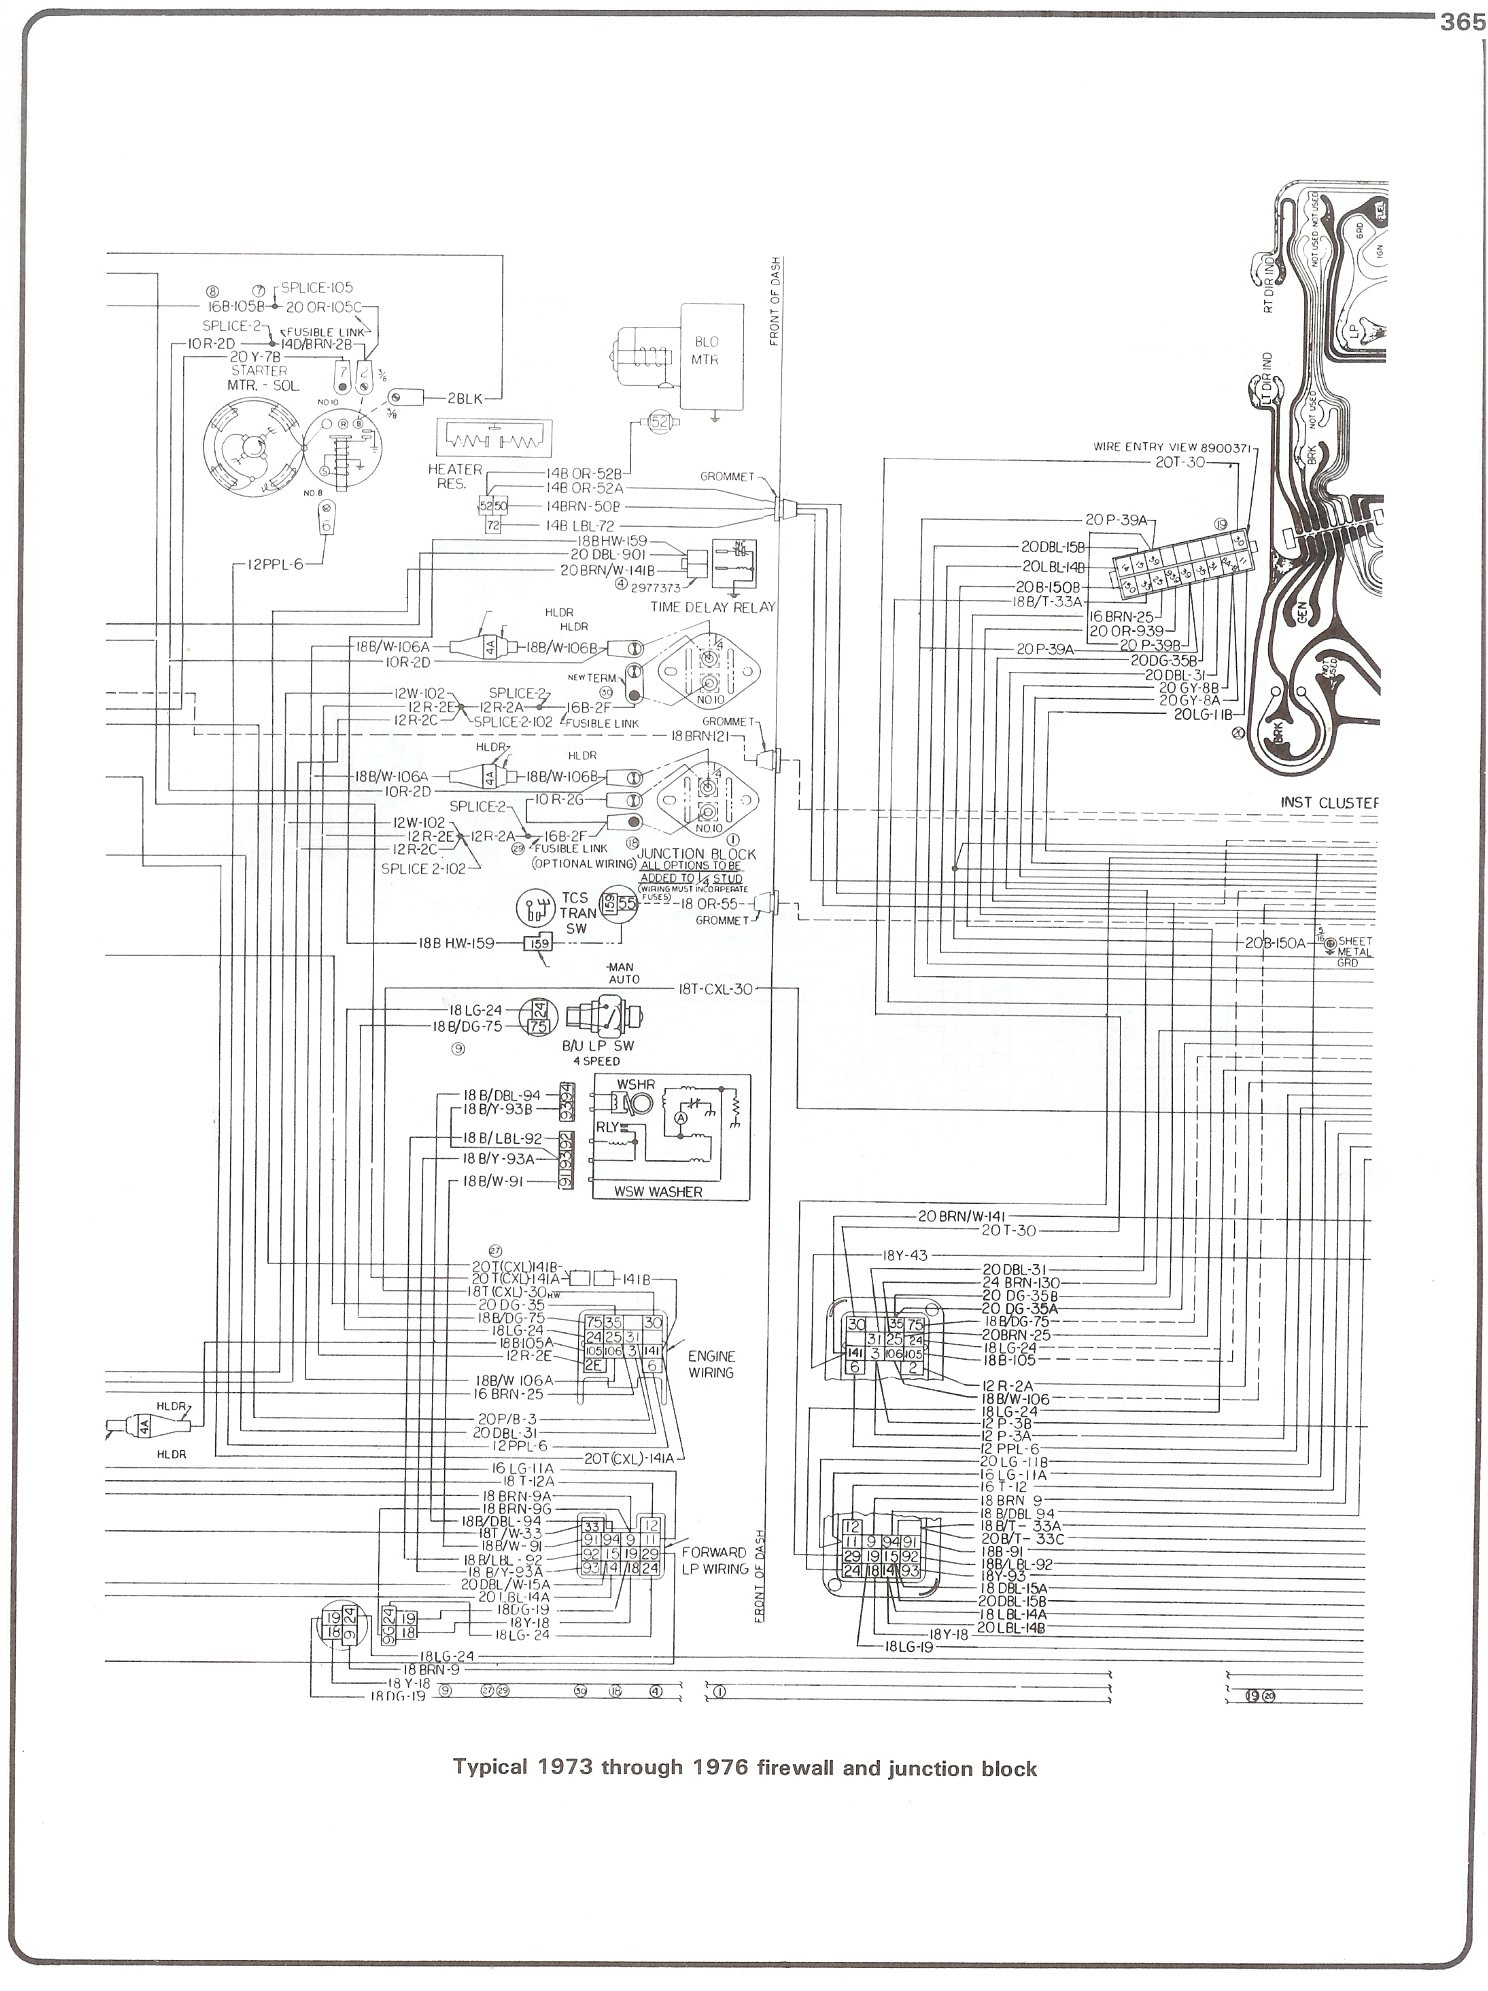 73 76_firewall_junct complete 73 87 wiring diagrams 1978 chevy truck fuse box diagram at creativeand.co